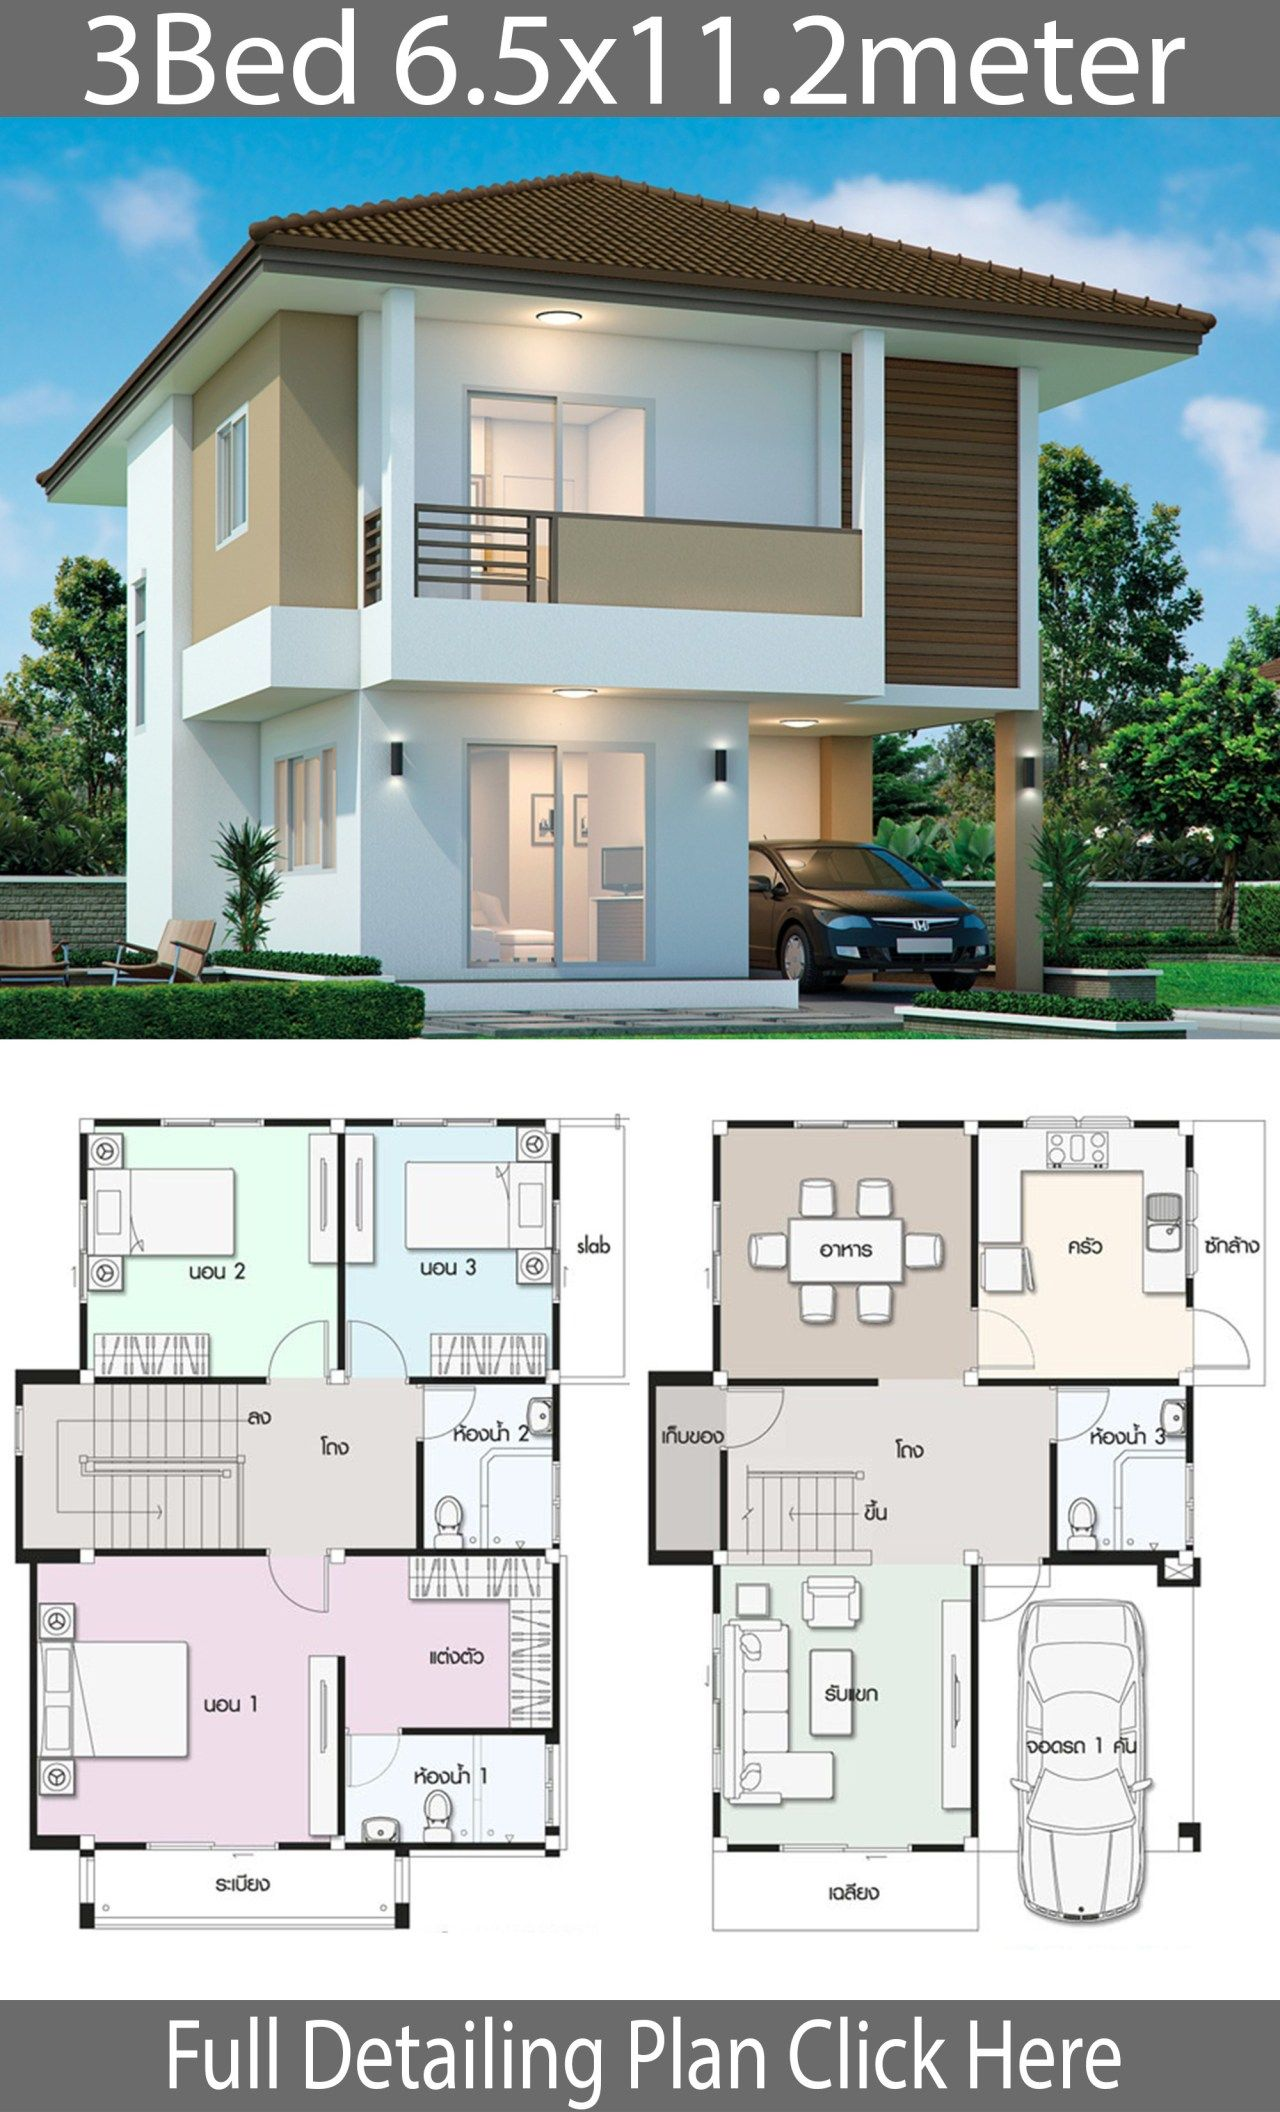 House Design Plan 6 5x11 2m With 3 Bedrooms Home Ideas House Plans Mansion House Front Design House Designs Exterior